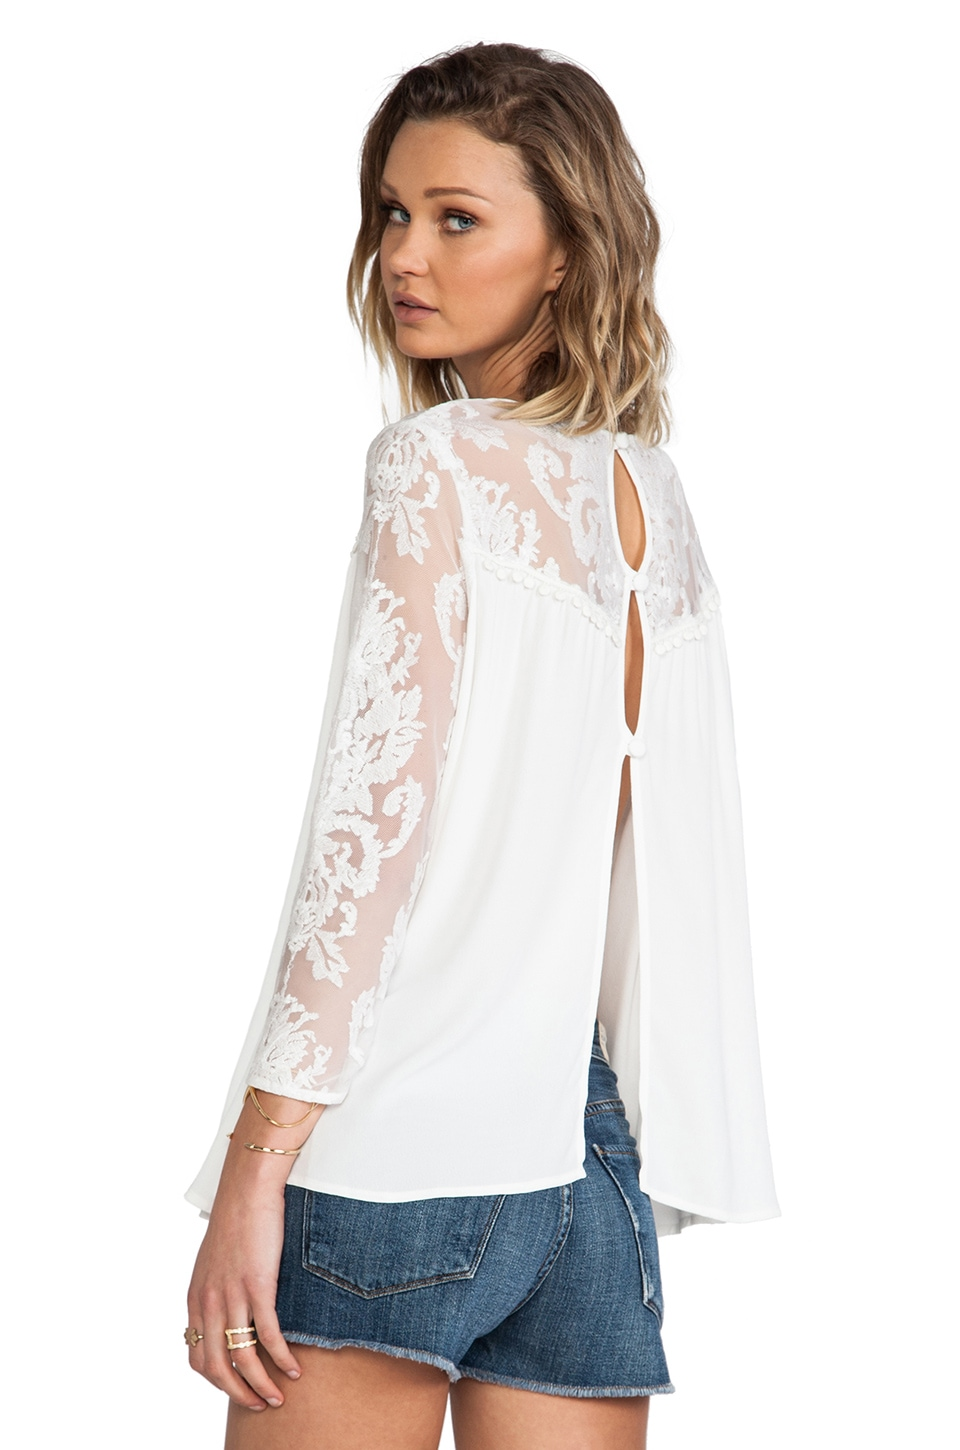 For Love & Lemons Bonita Blouse in Ivory